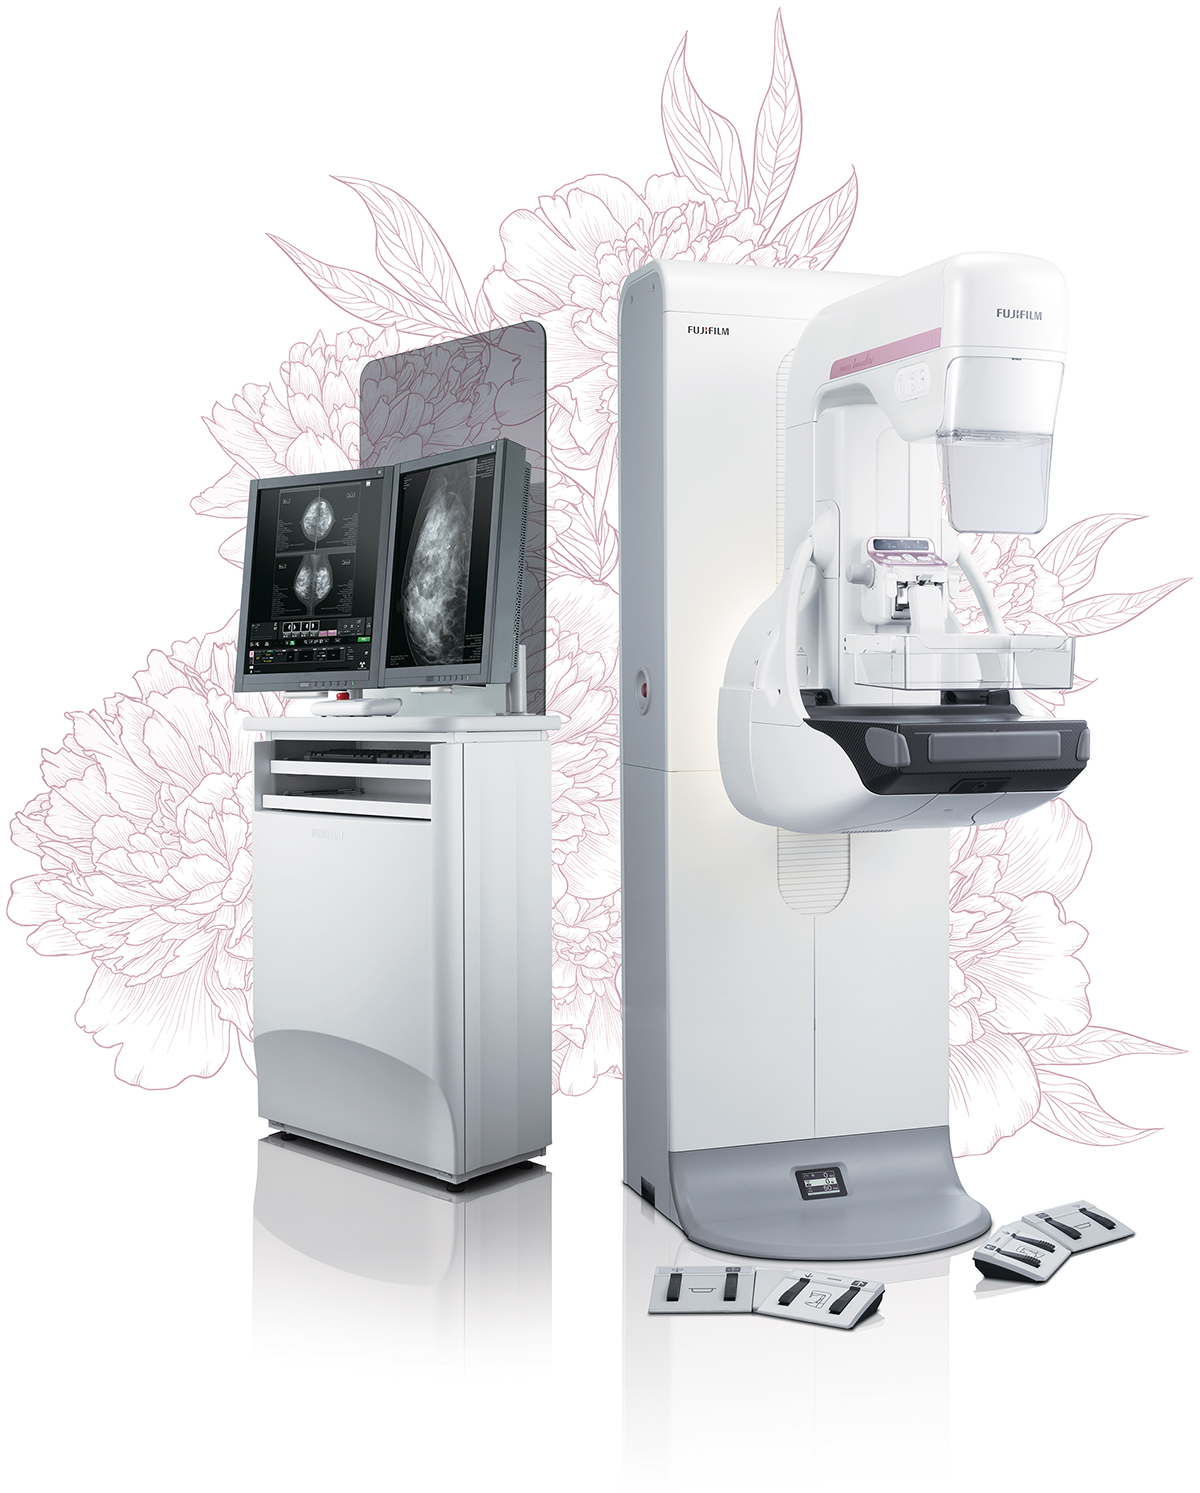 [photo] ASPIRE Cristalle digital mammography system and workstation